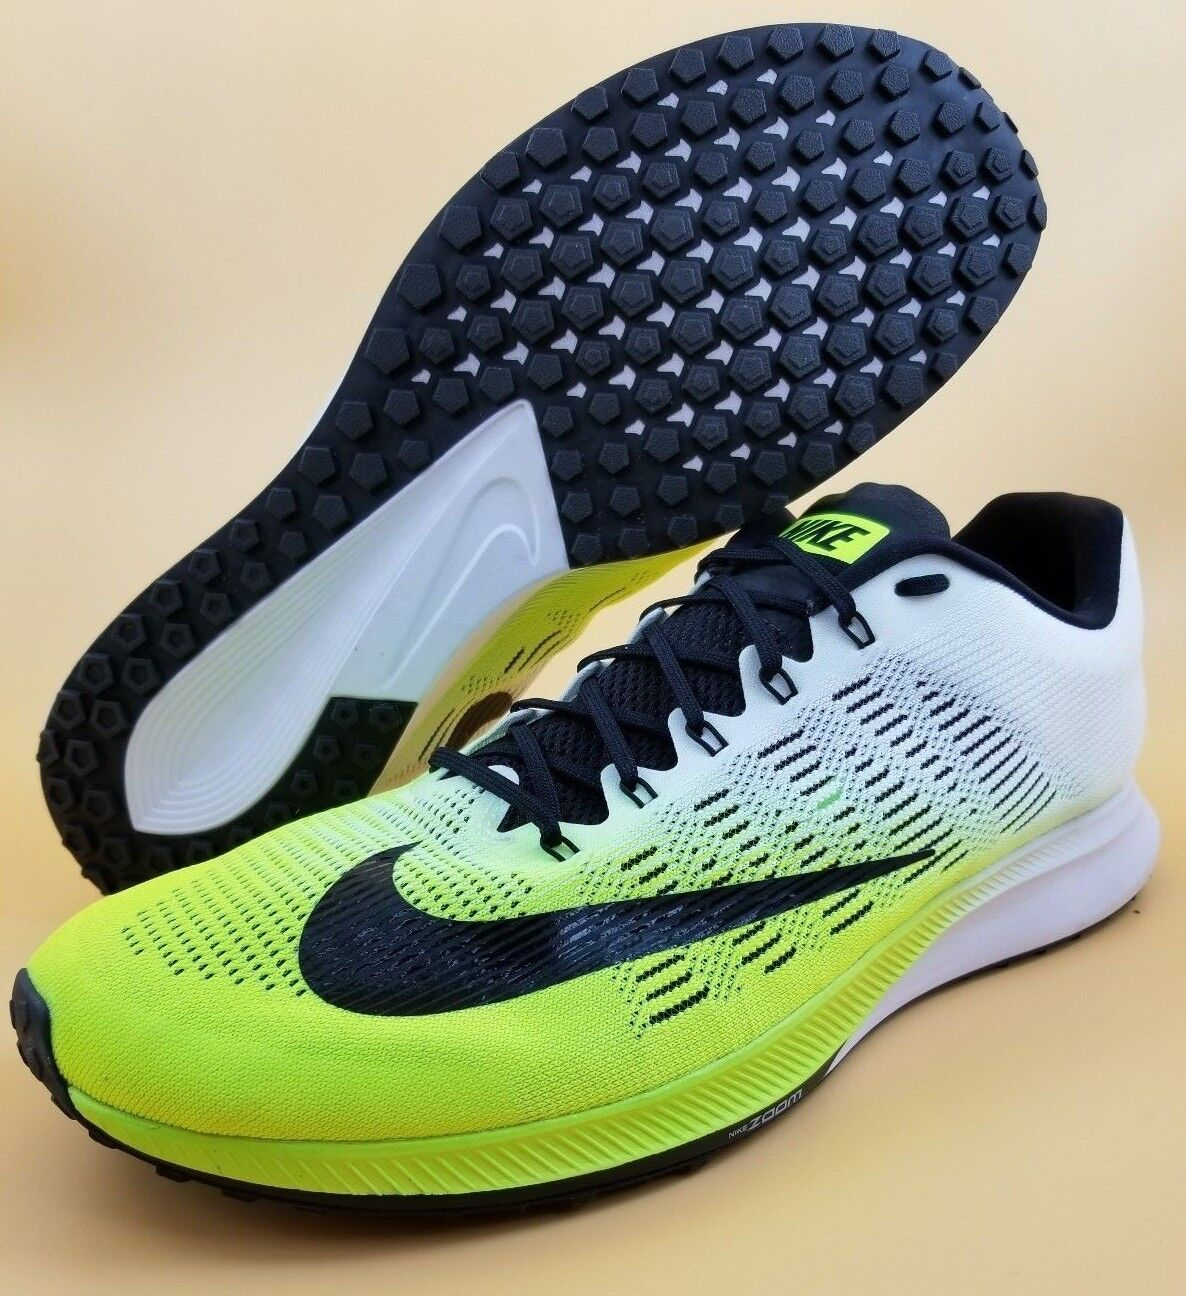 Nike Air Zoom Elite 9 SIZE 15 Men Running shoes Volt White Black 863769-701  150